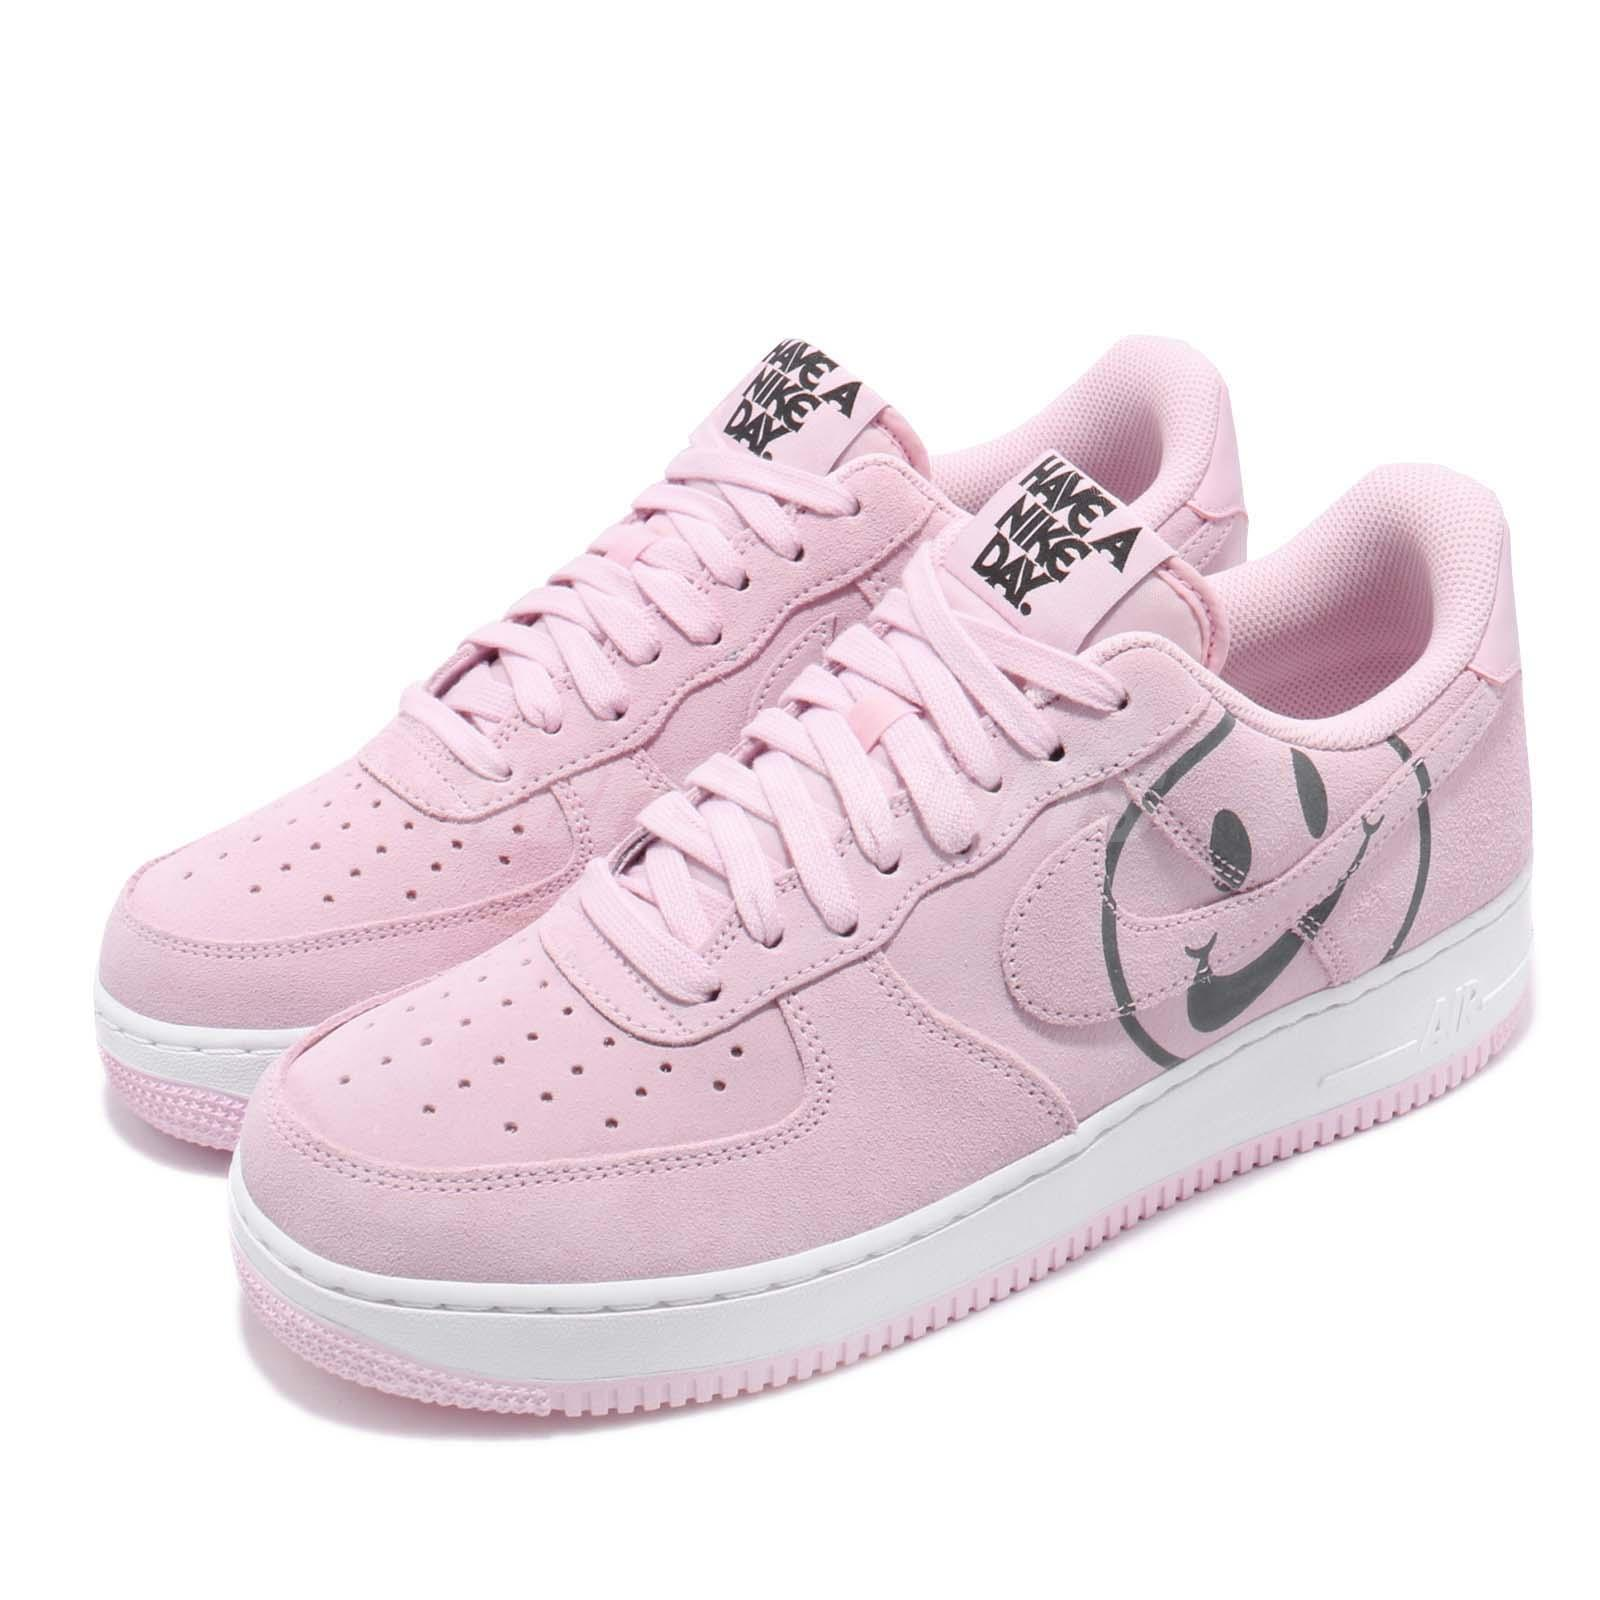 362bcae5 Details about Nike Air Force 1 07 LV8 ND AF1 Have A Nike Day Pink White Men  Shoes BQ9044-600